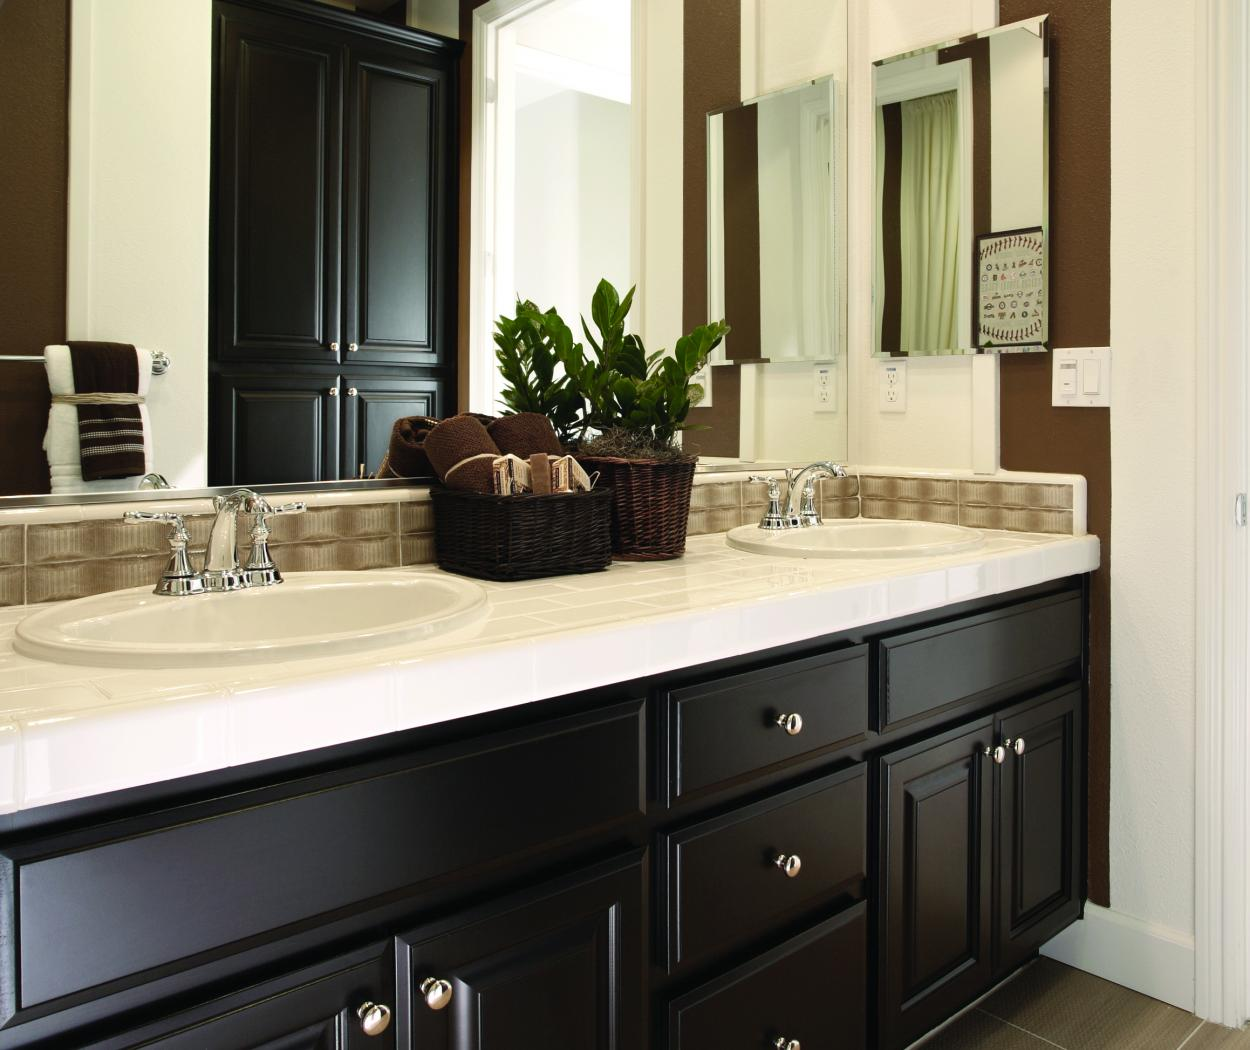 Traditional Bathroom Vanity Stained in Dark Espresso with Double Sinks, an Off White Counter Top and Amerock Knobs